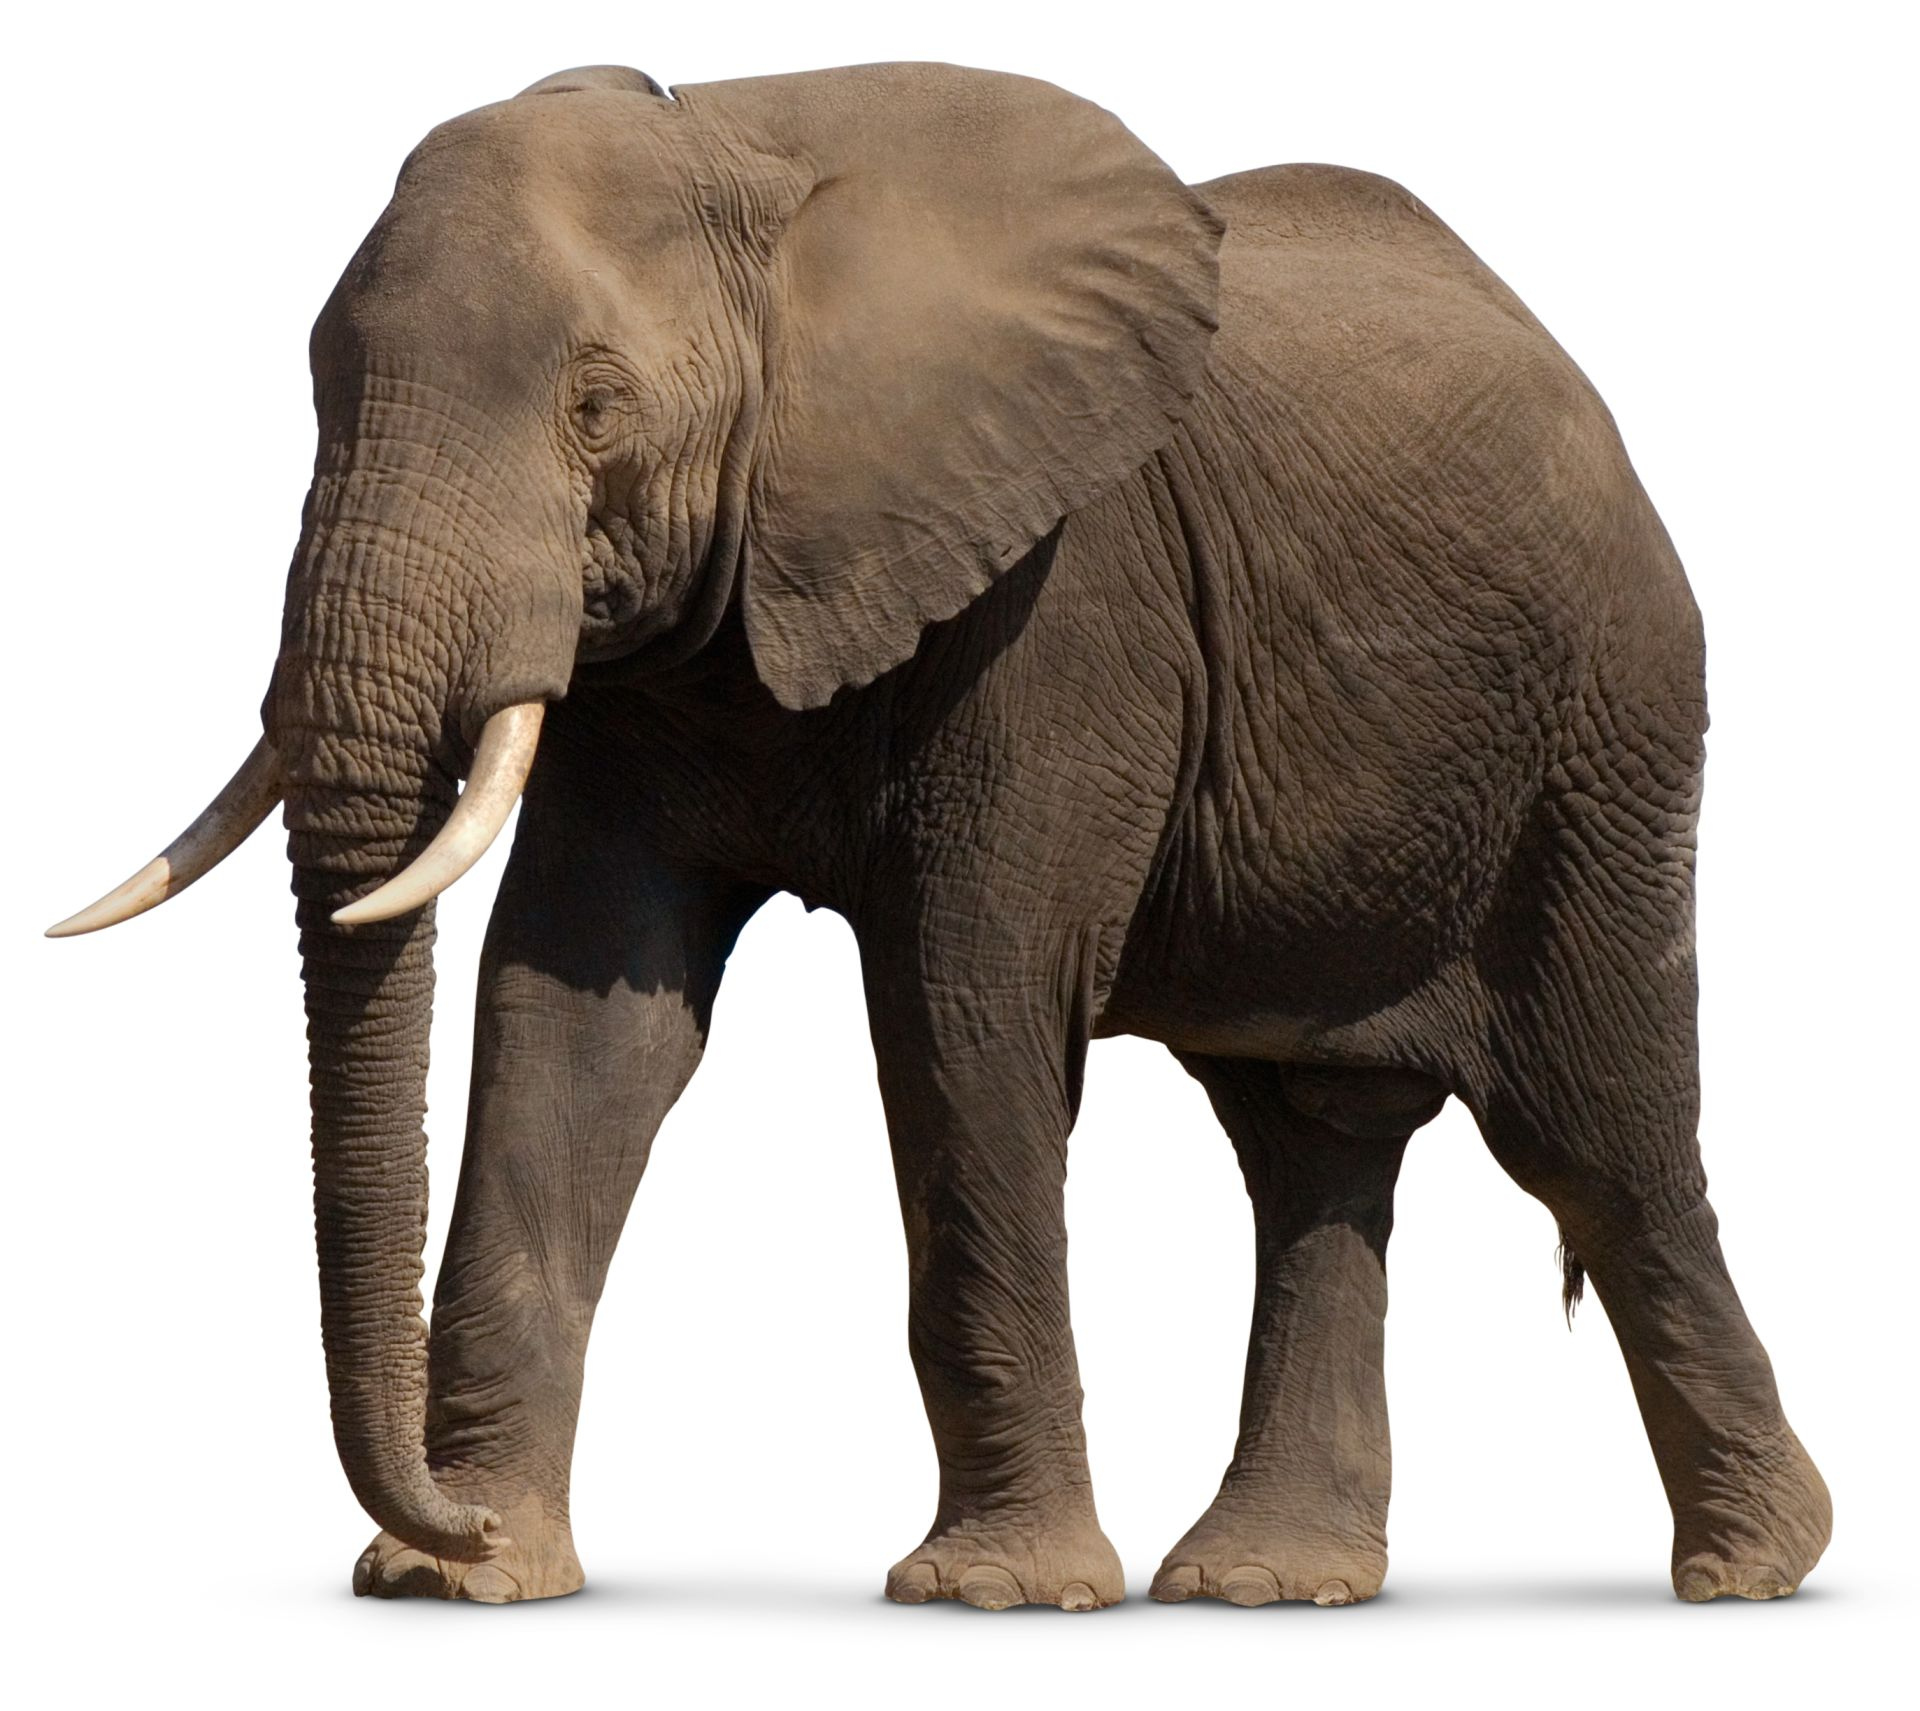 Facts About Elephants | Types of Elephants | DK Find Out